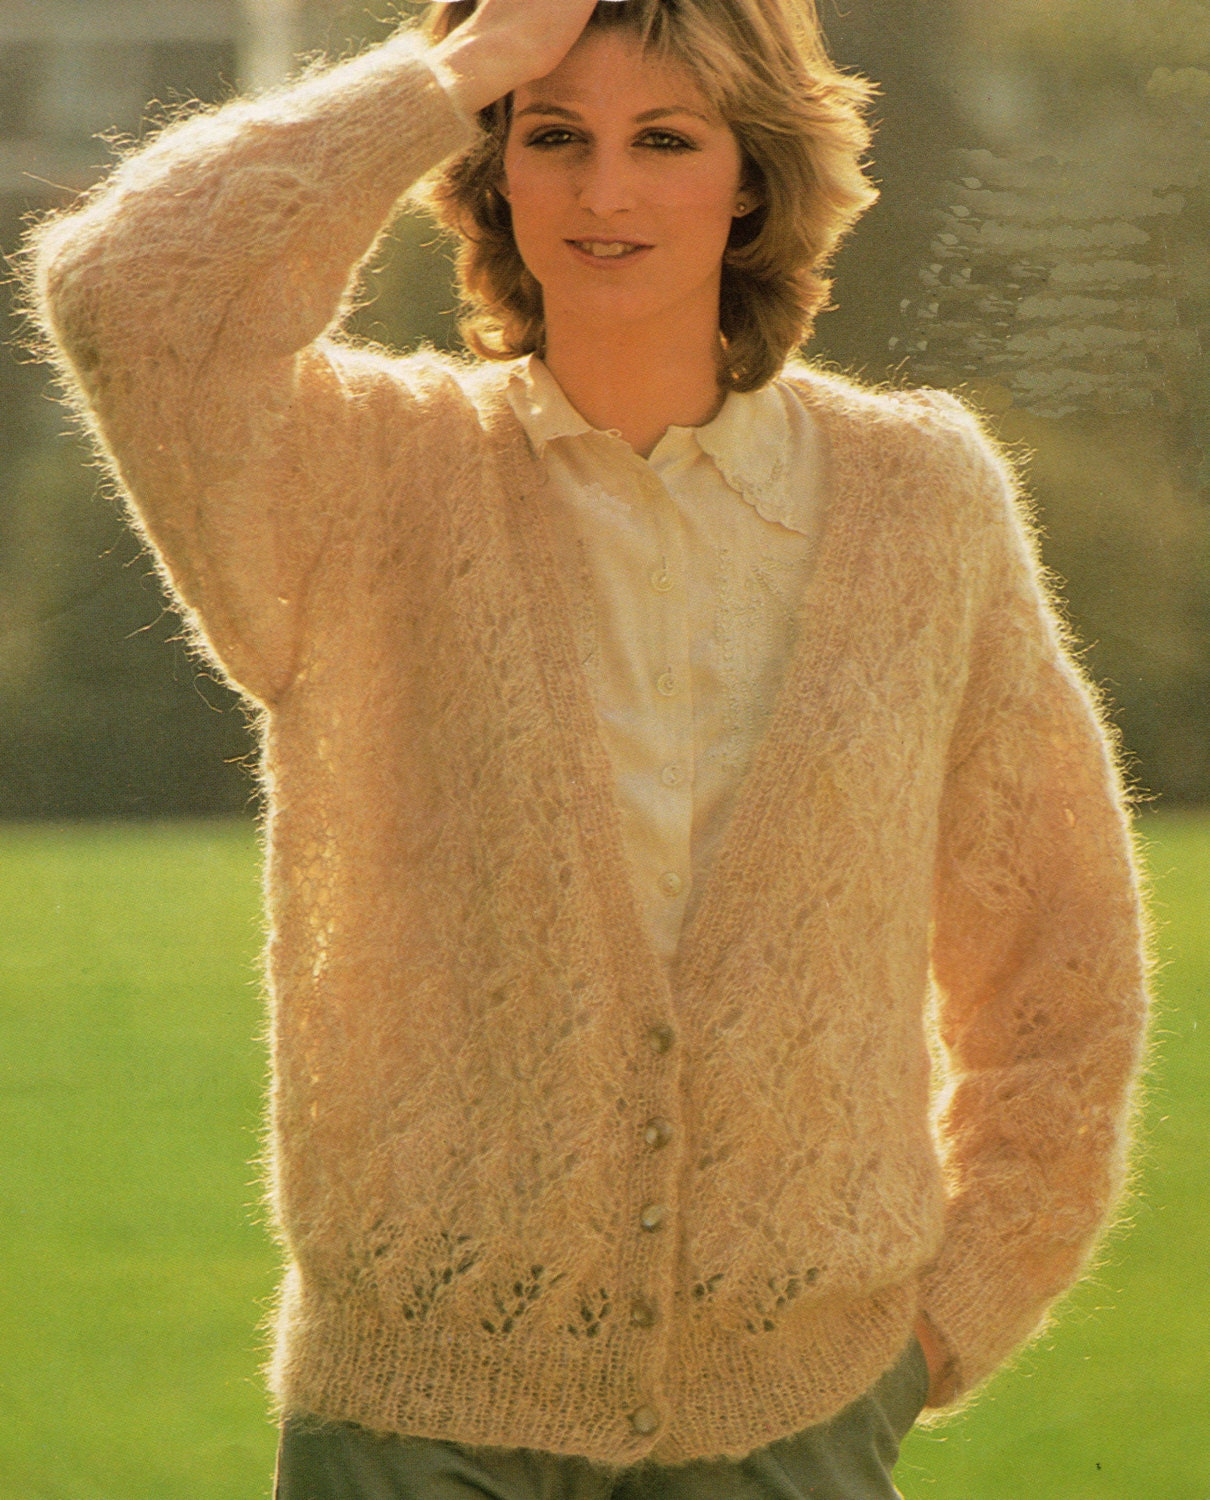 Ladies Knitting Pattern V Neck Lace Stitch Cardigan 34-36